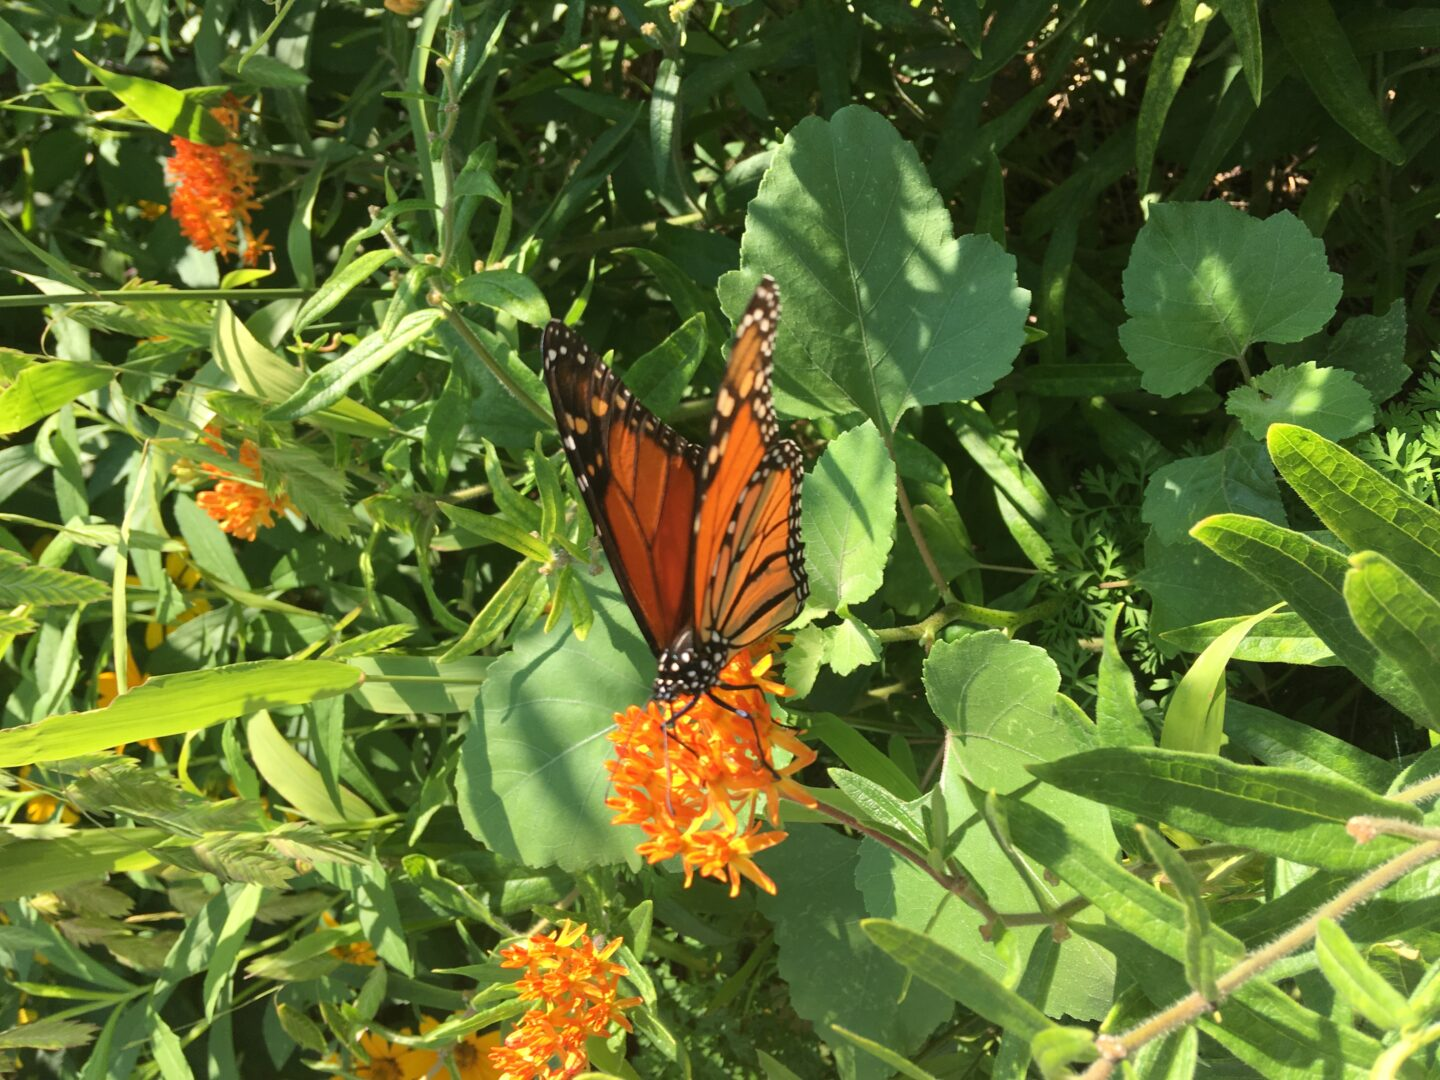 An orange and black monarch butterfly sits on an orange flower